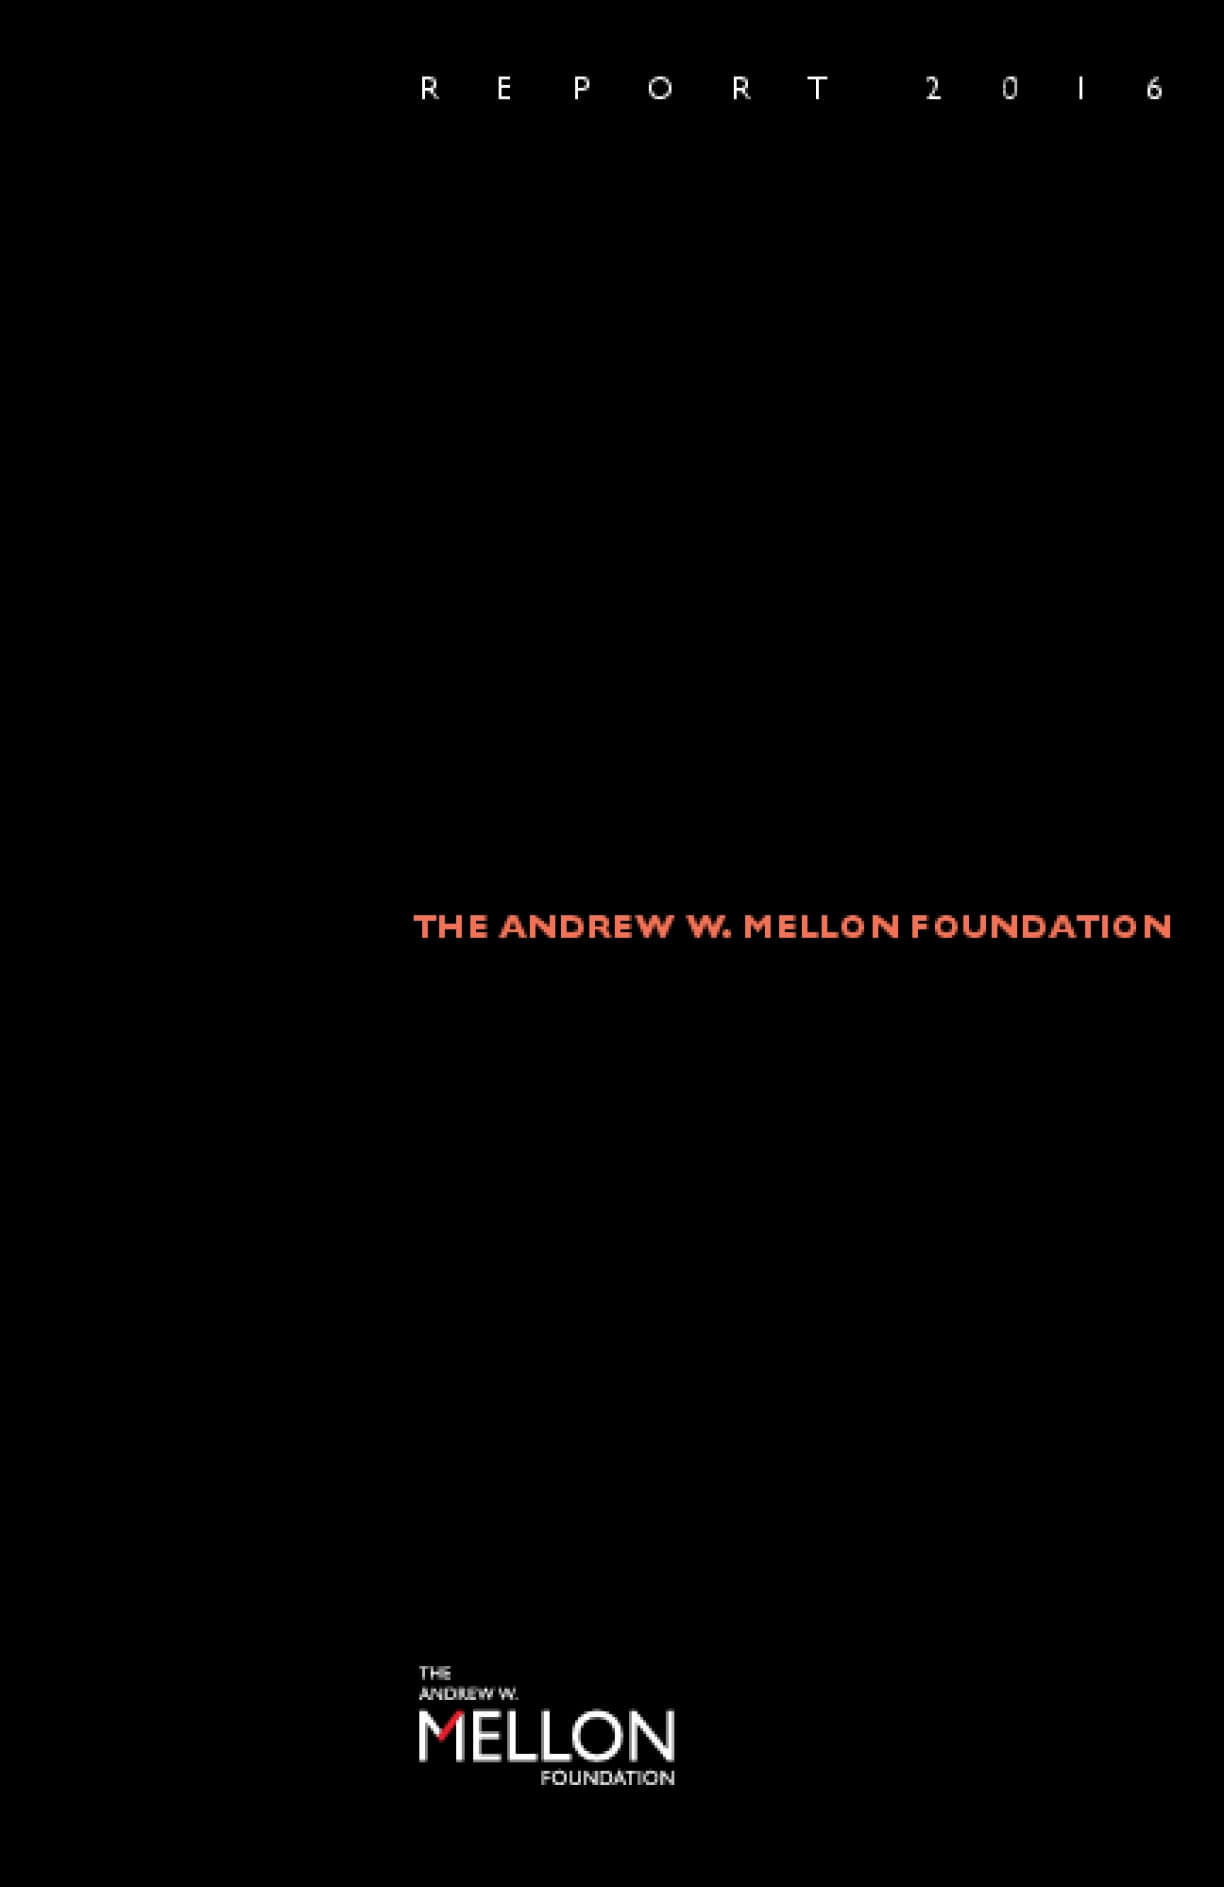 The Andrew W. Mellon Foundation Report 2016